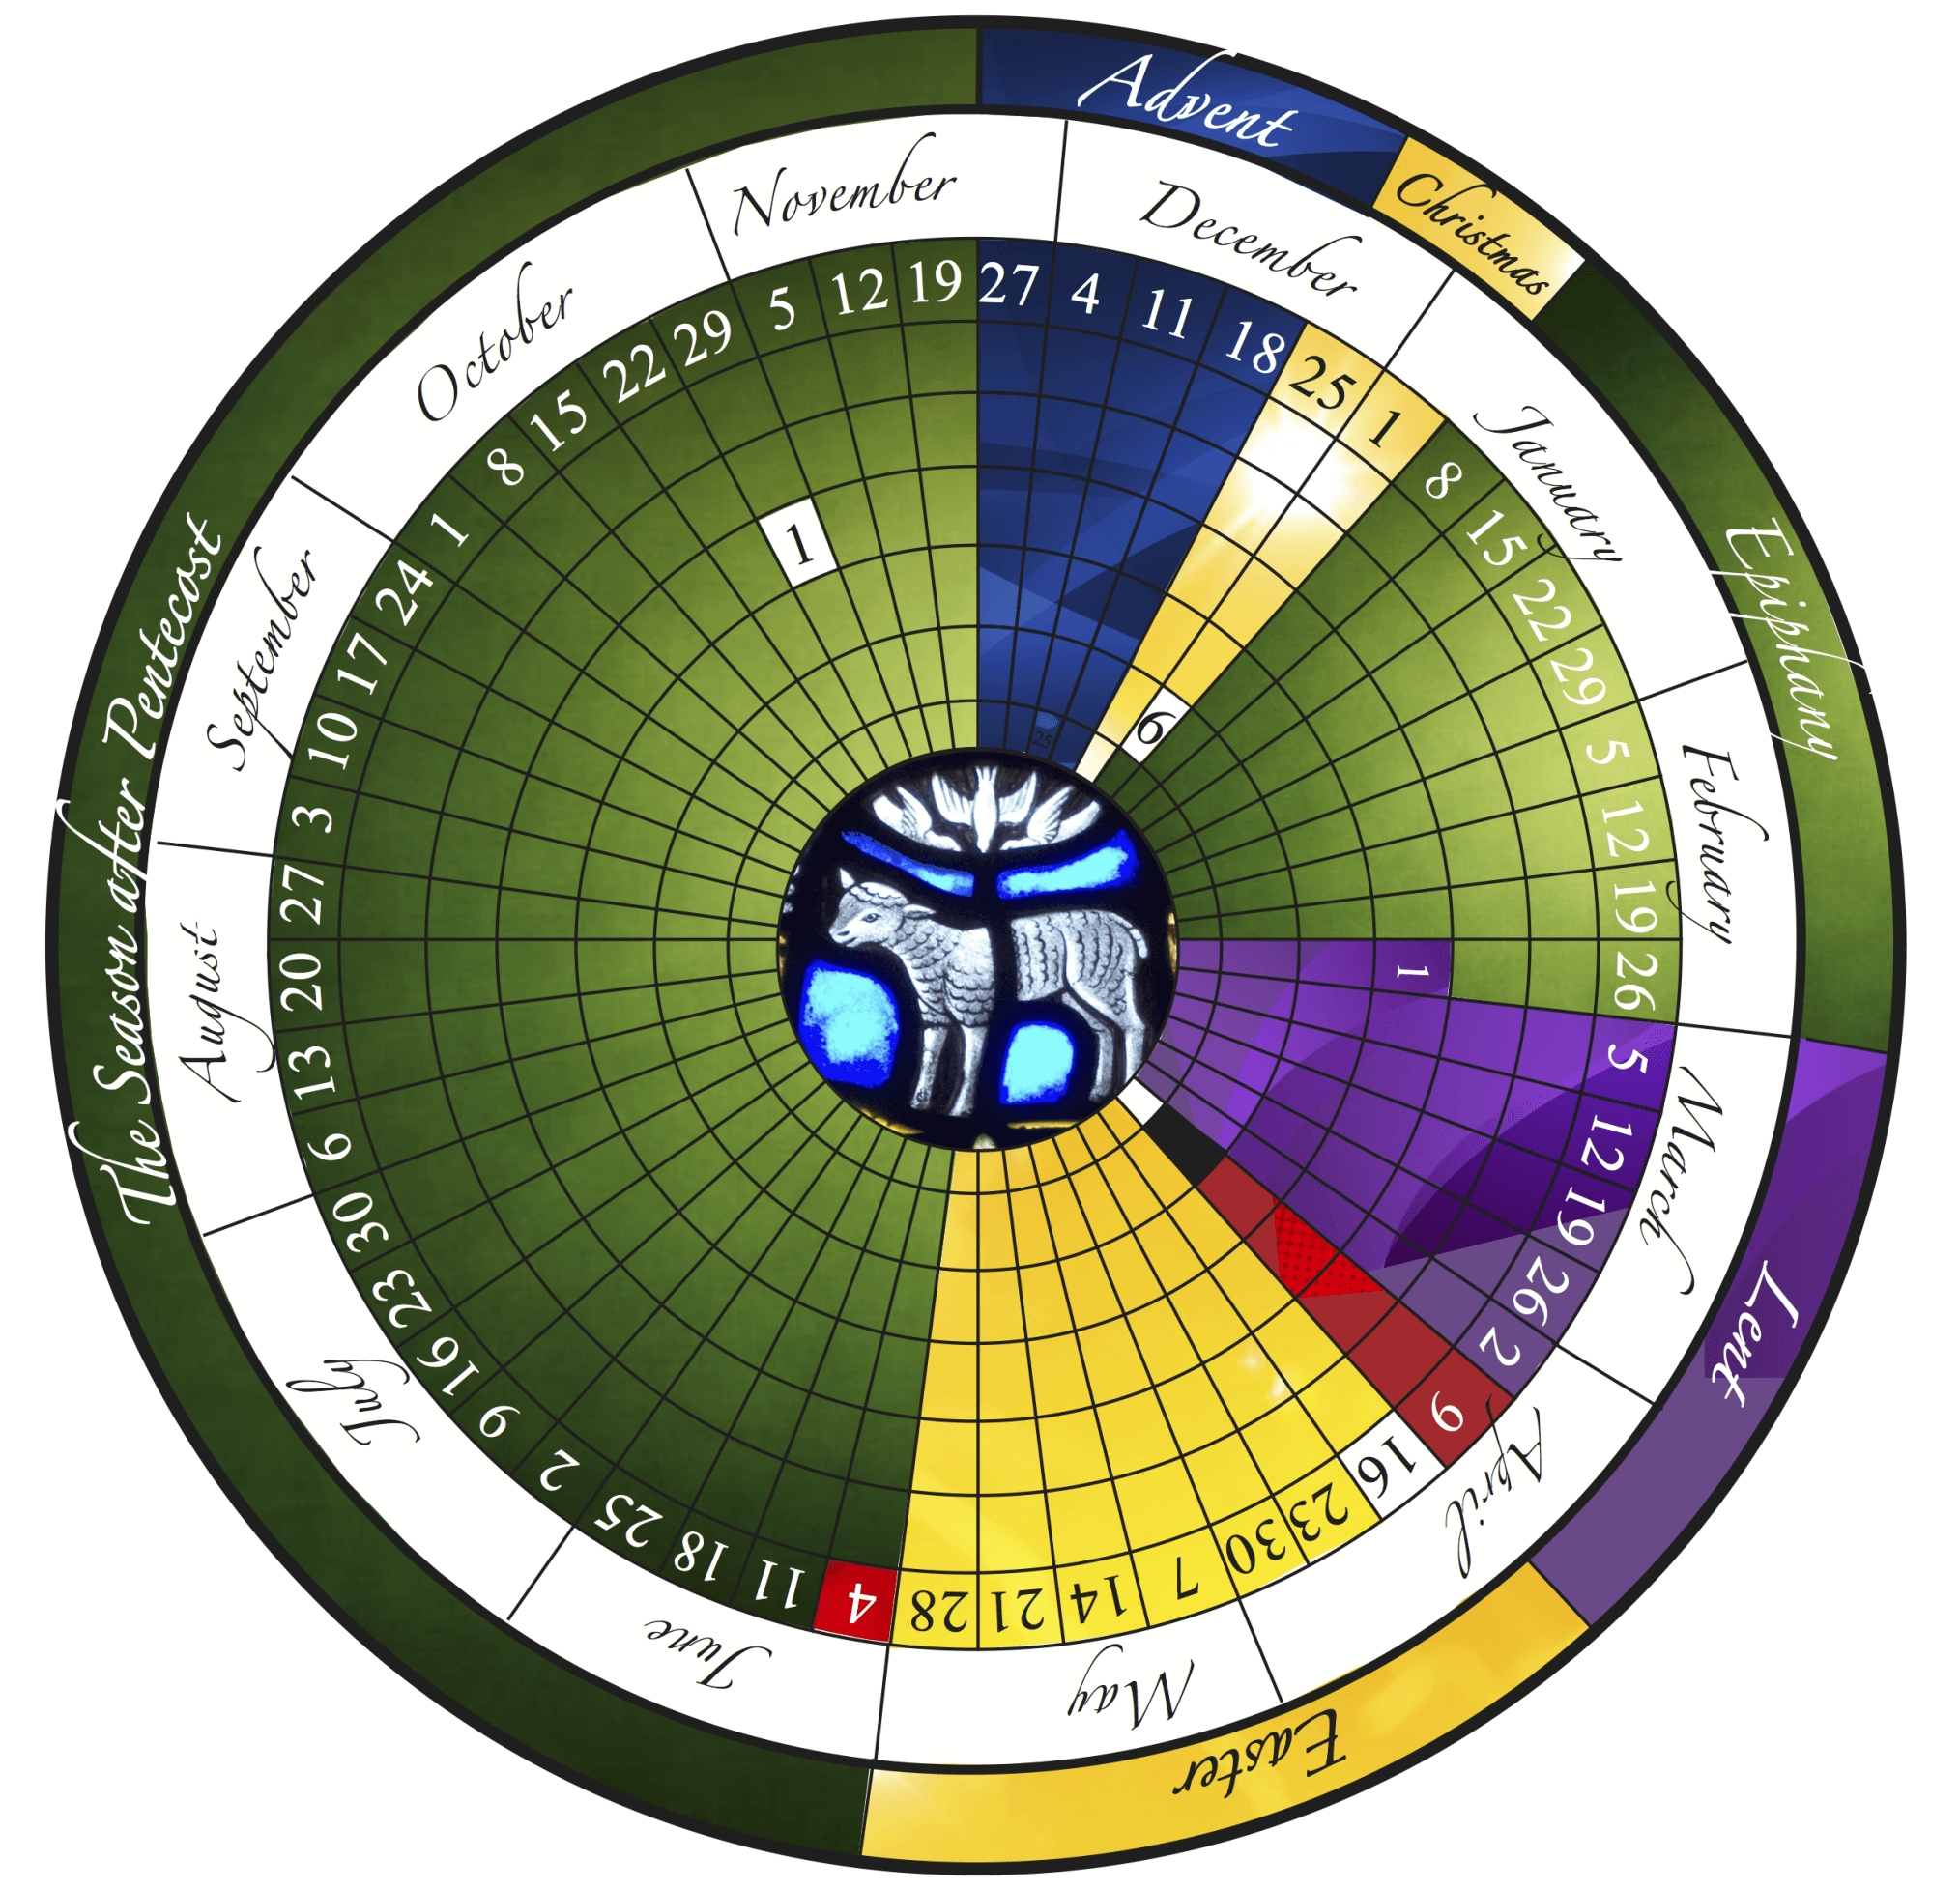 The Liturgical Year Explained (Plus Free Printable Calendar!)